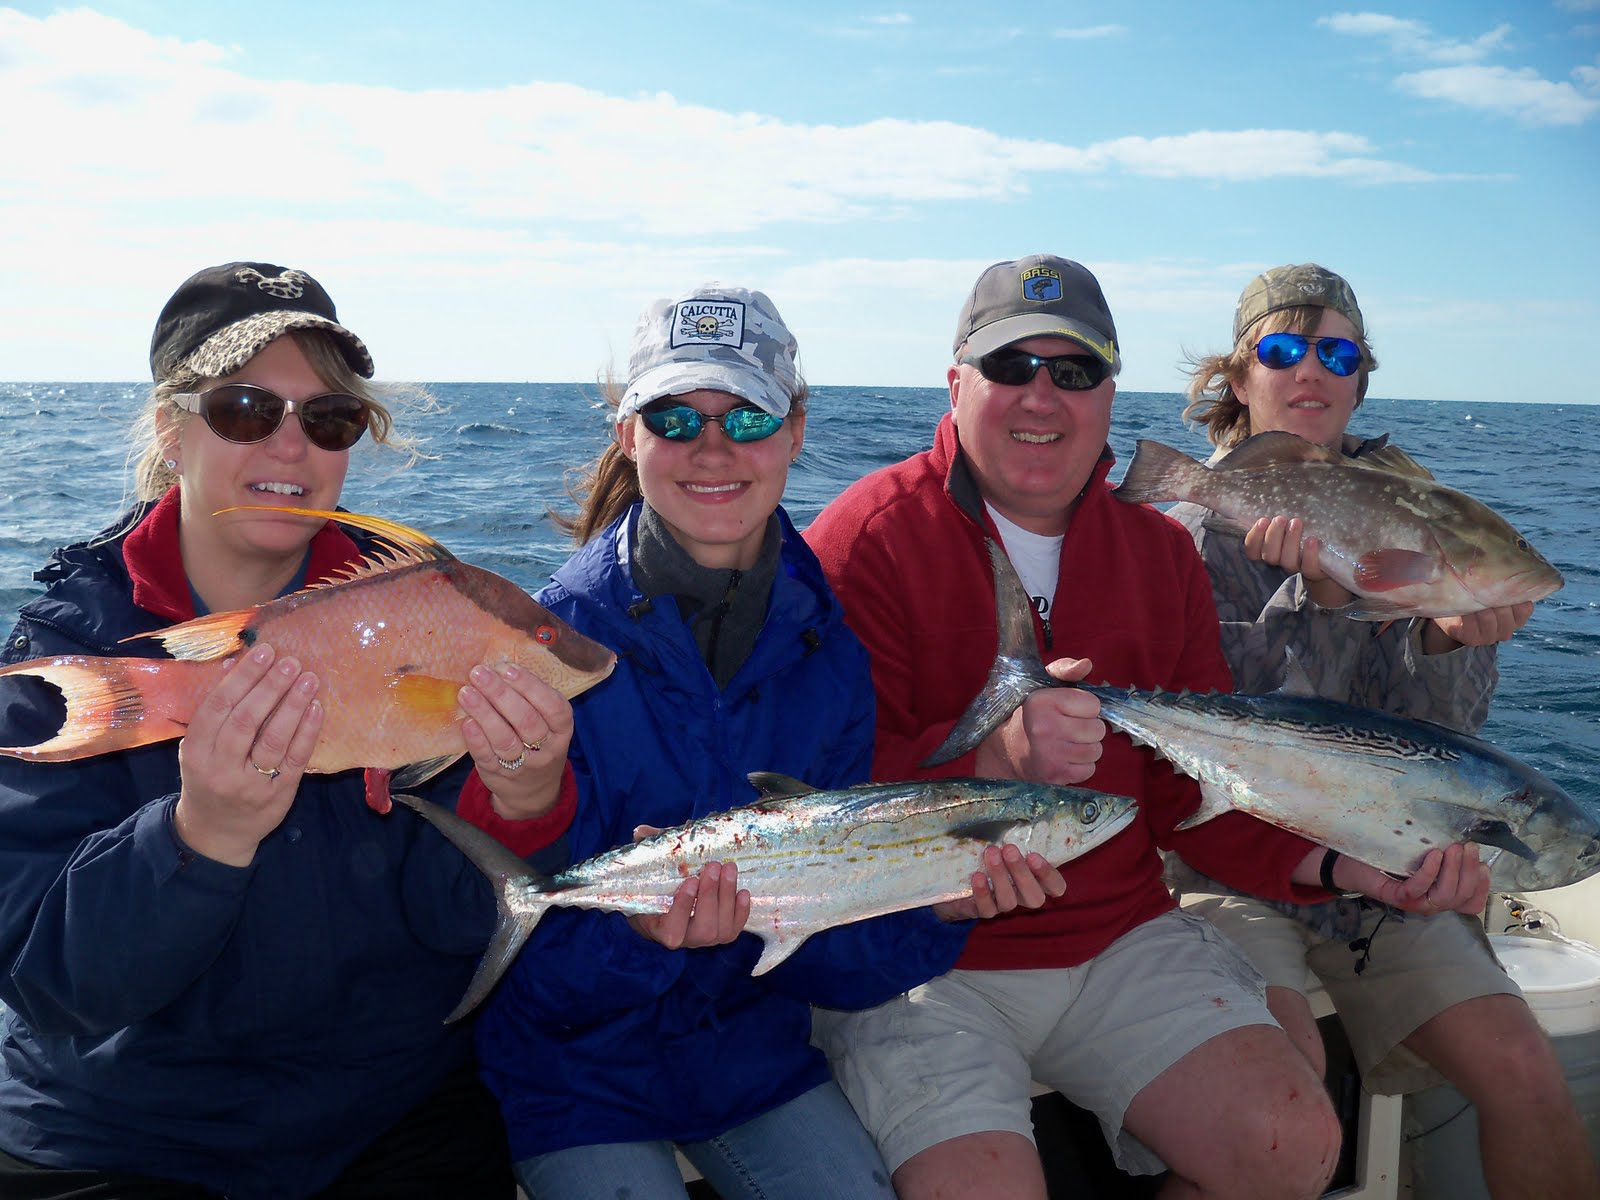 Fishing reports and tactics for fl keys charter fishing for Florida keys fishing guides